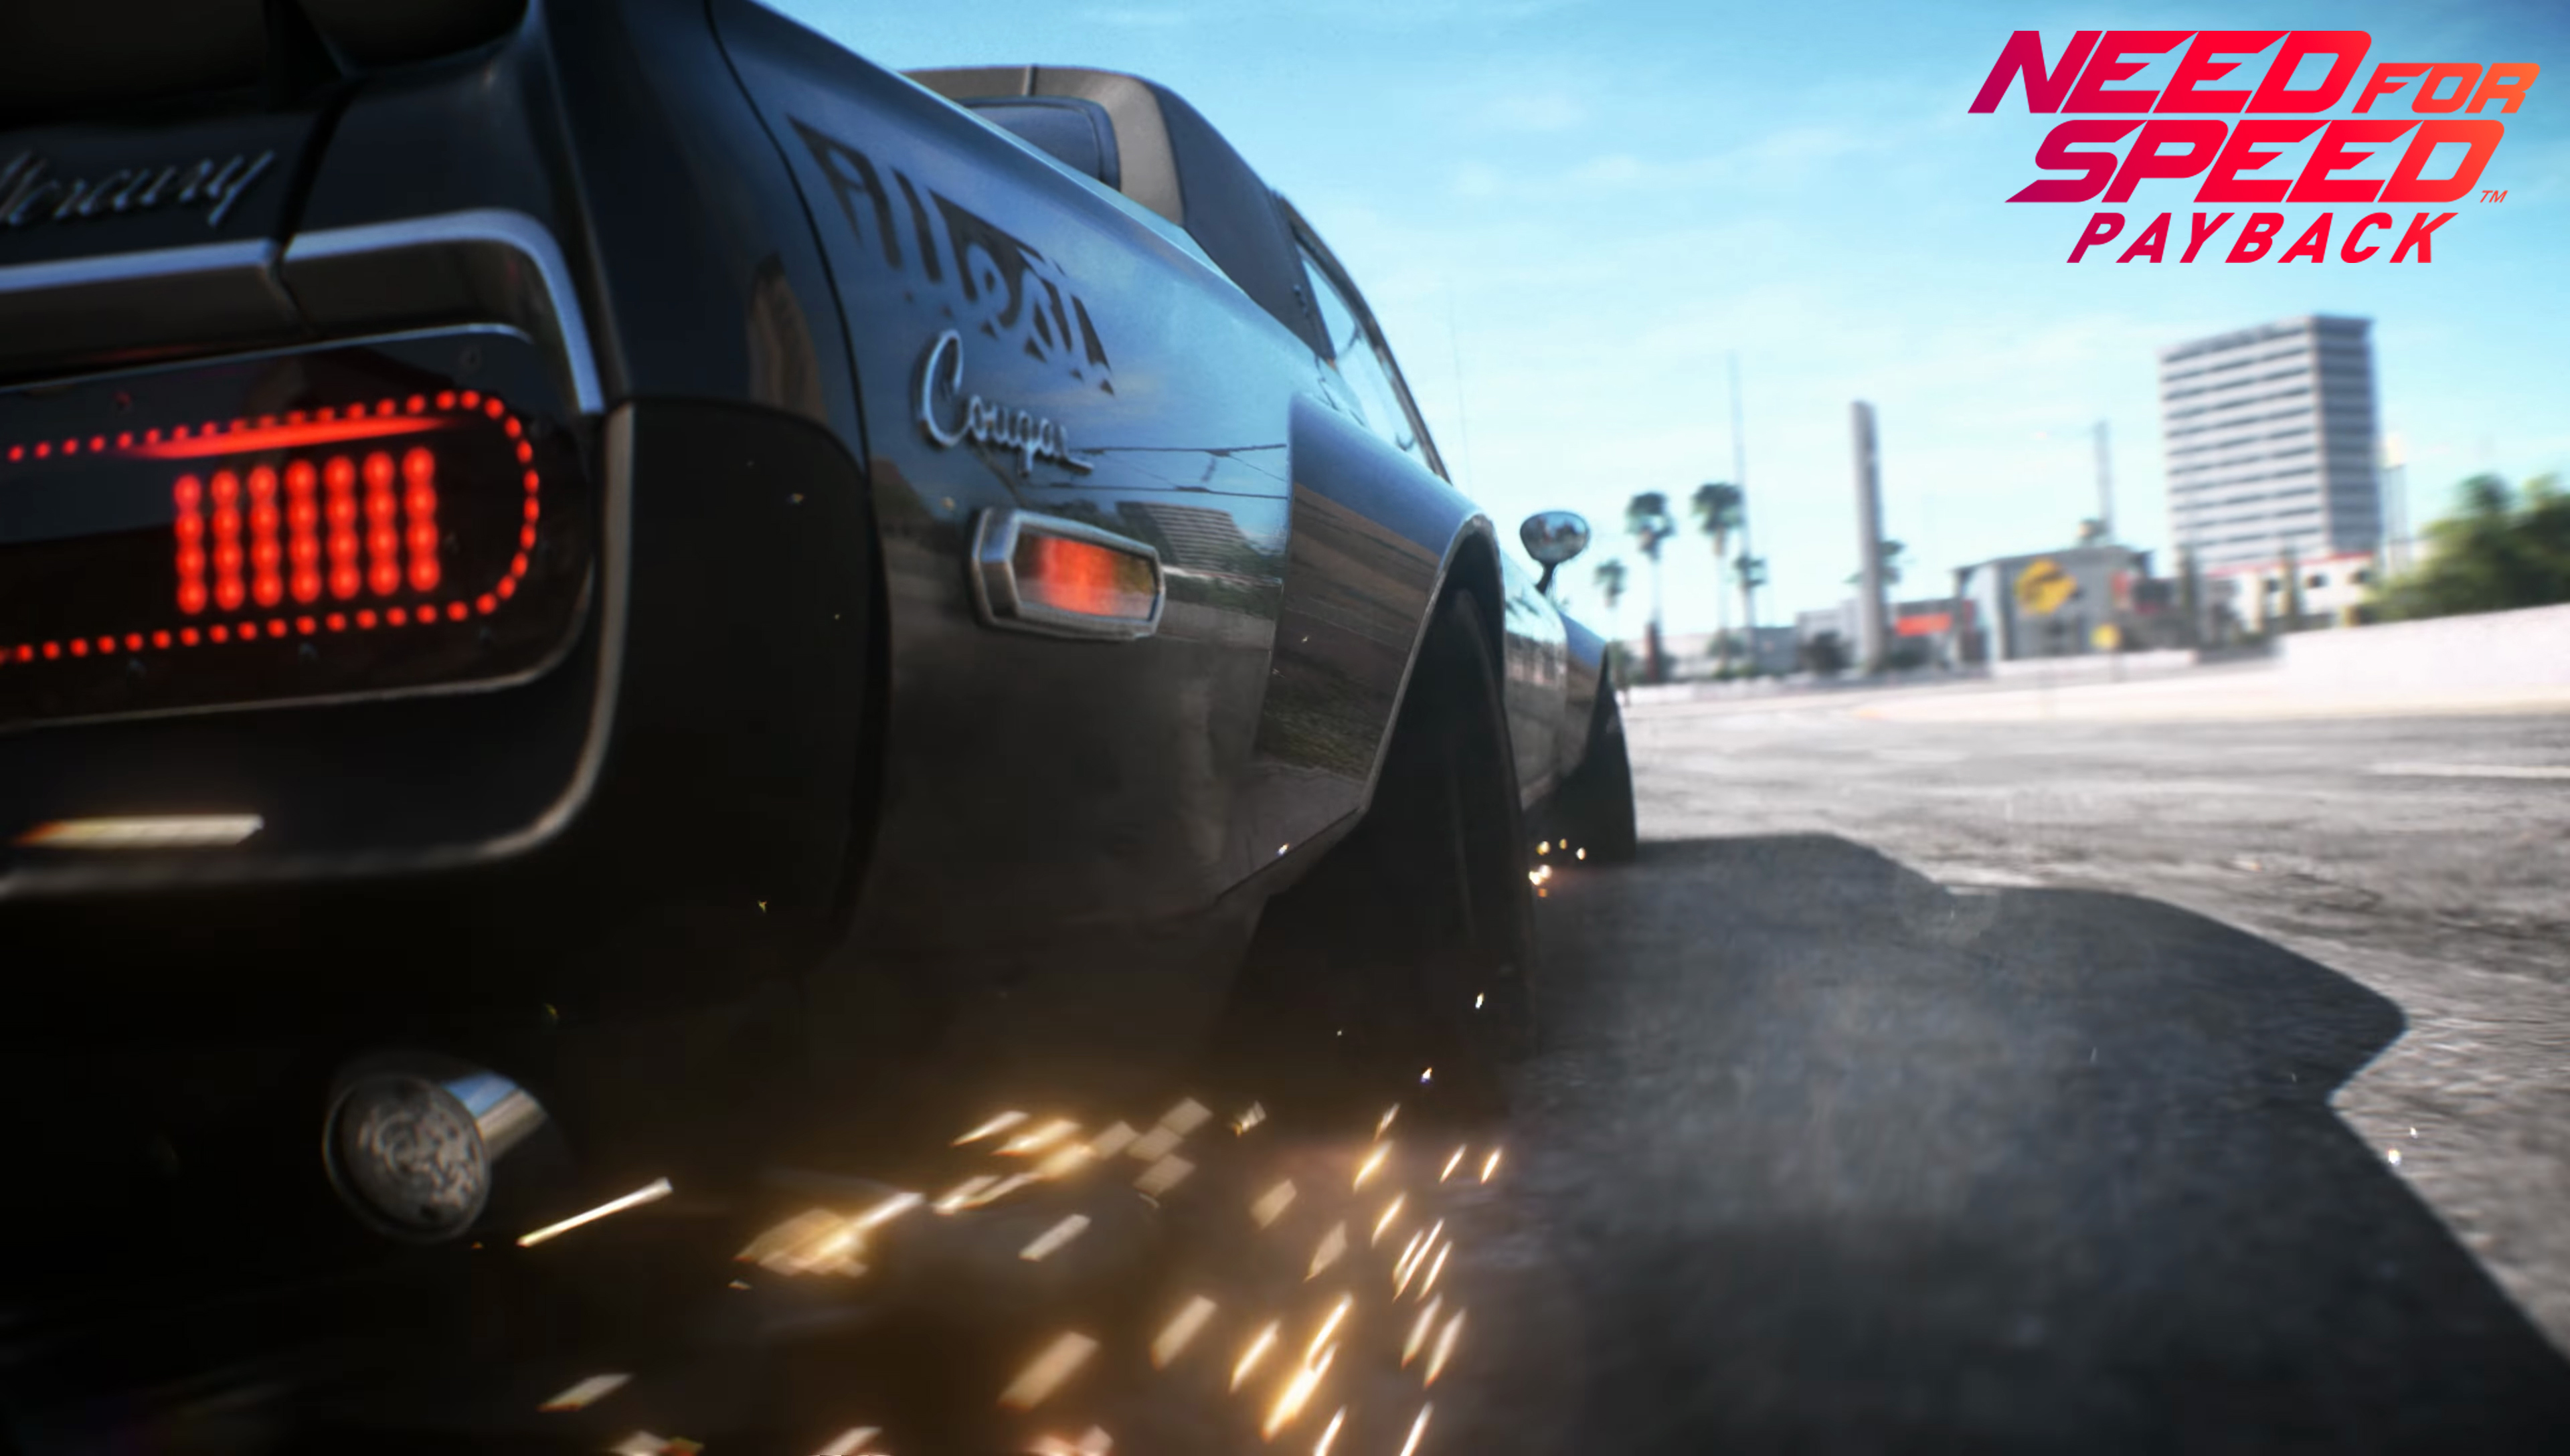 Need For Speed Payback Wallpaper: Need For Speed Payback 2017, HD Games, 4k Wallpapers